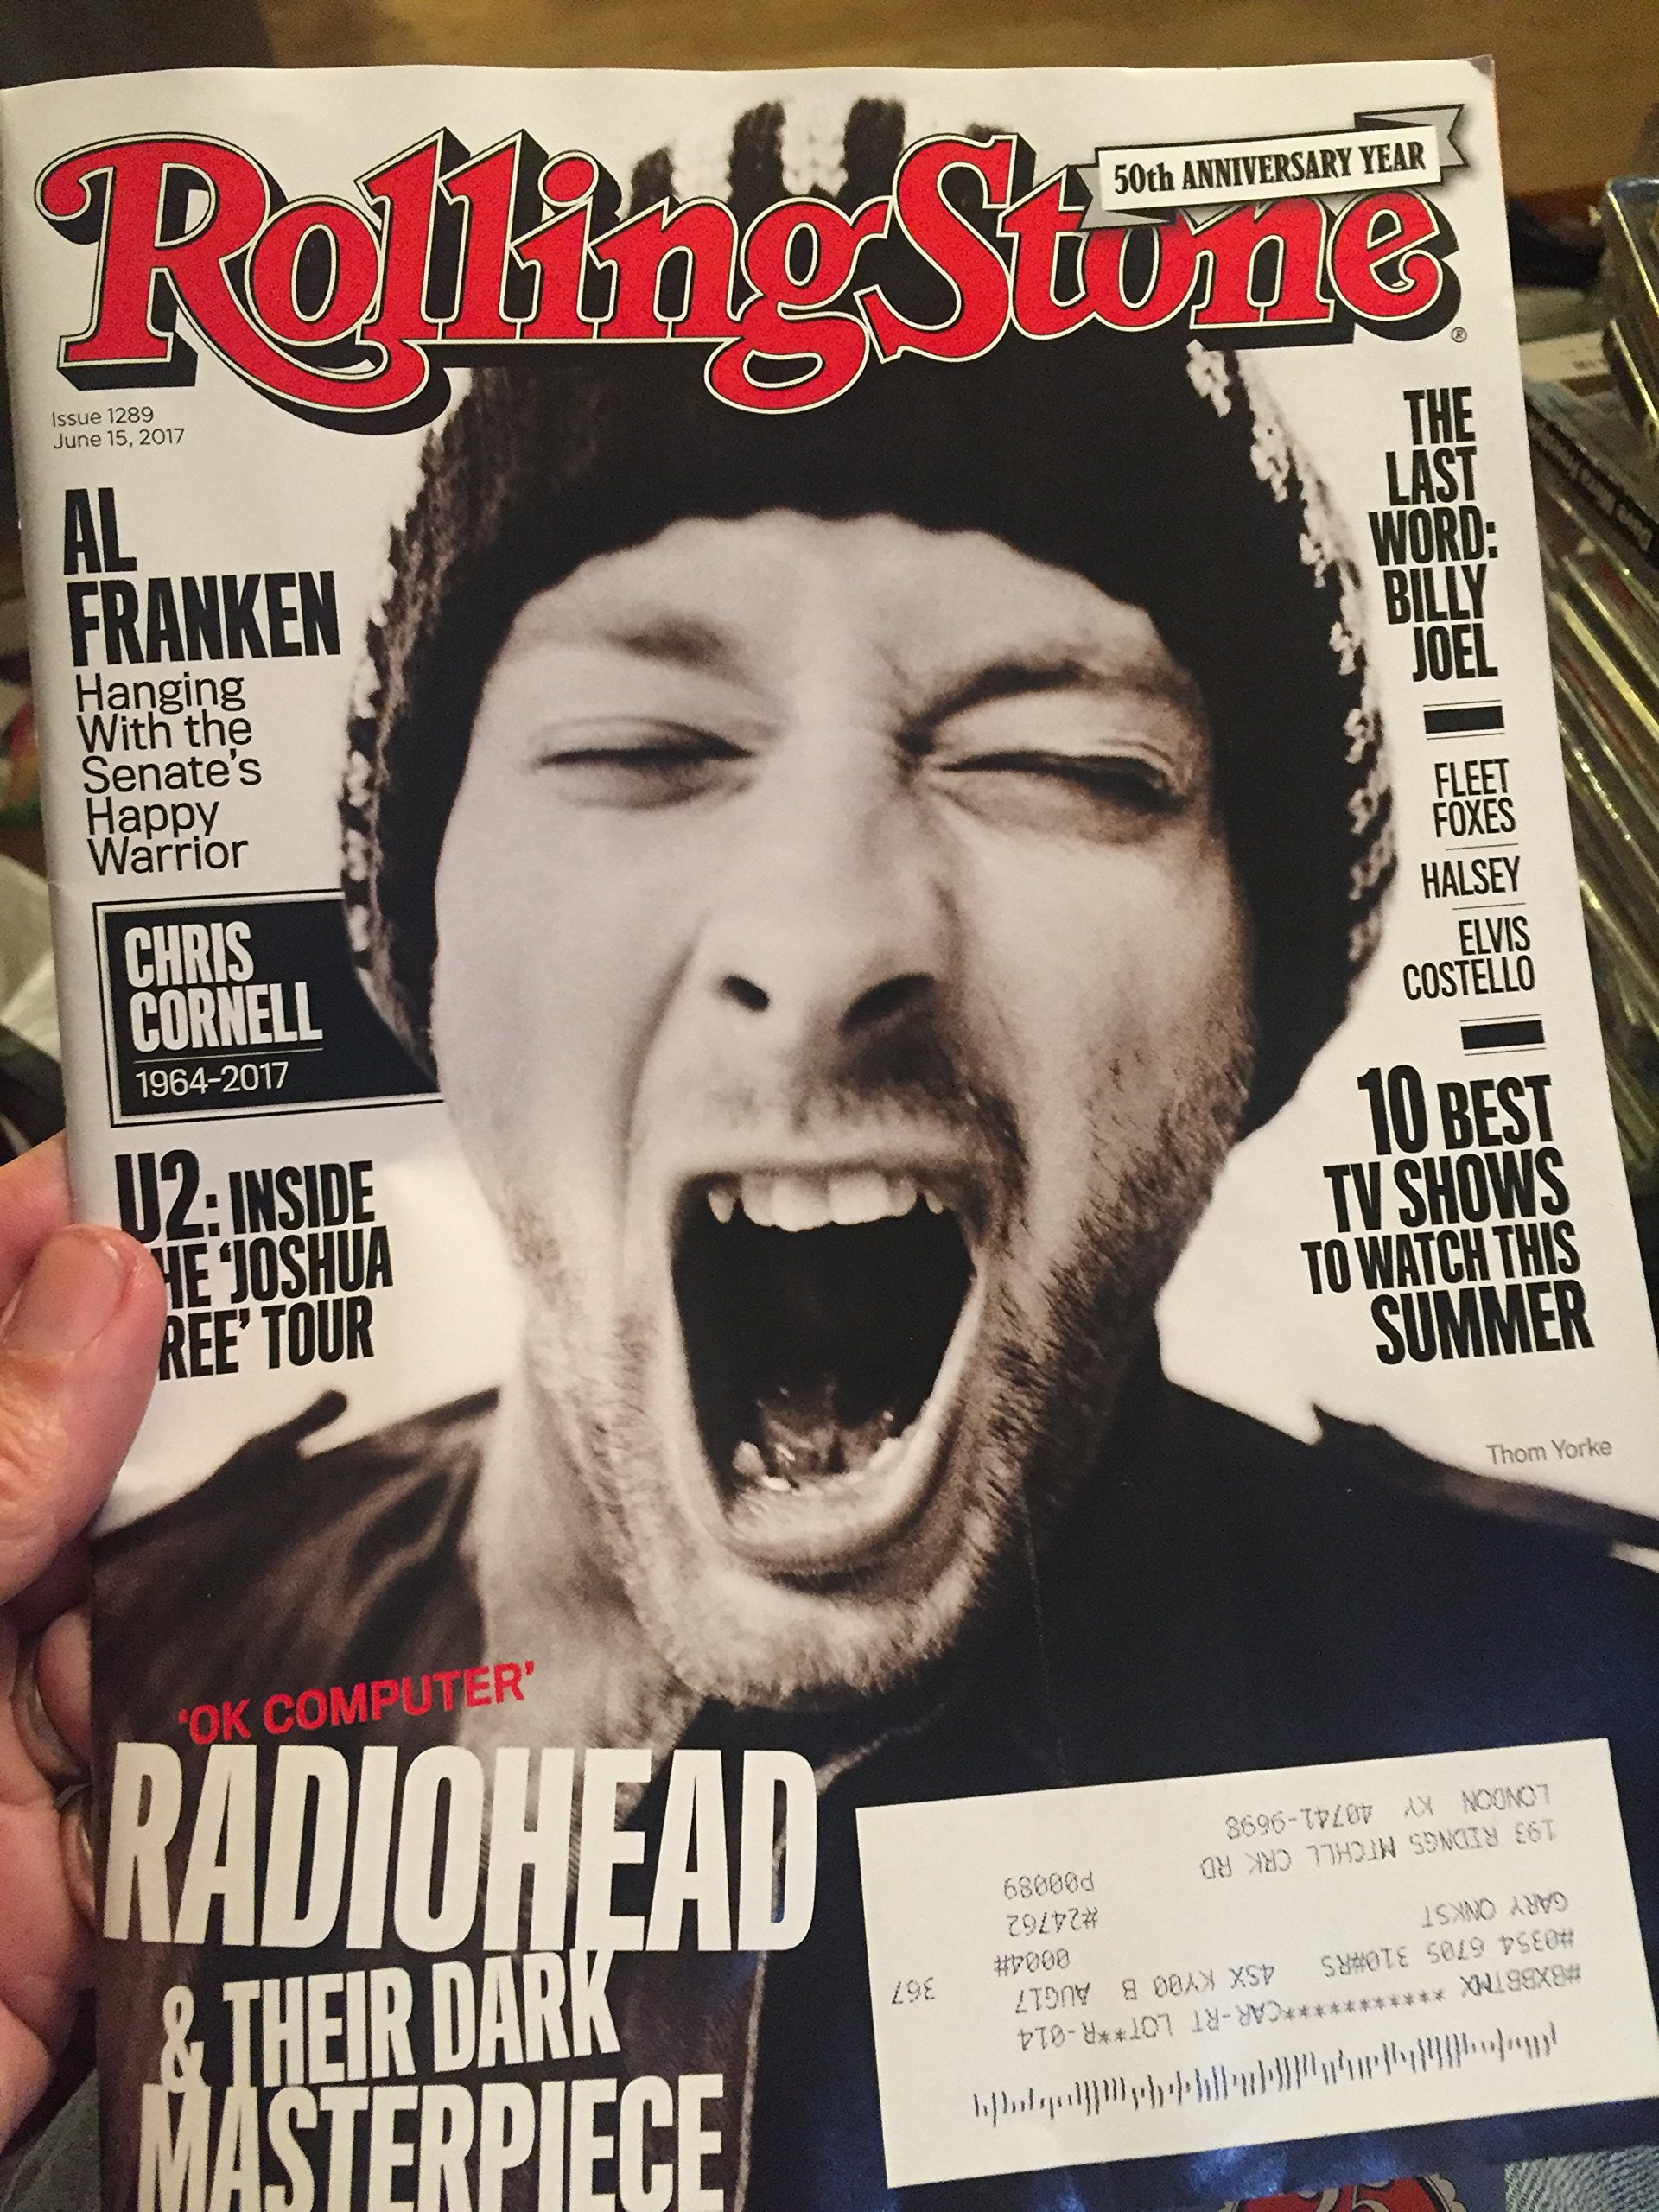 Download ROLLING STONE MAGAZINE---# 1289 --JUNE 15TH, 2017 ISSUE PDF